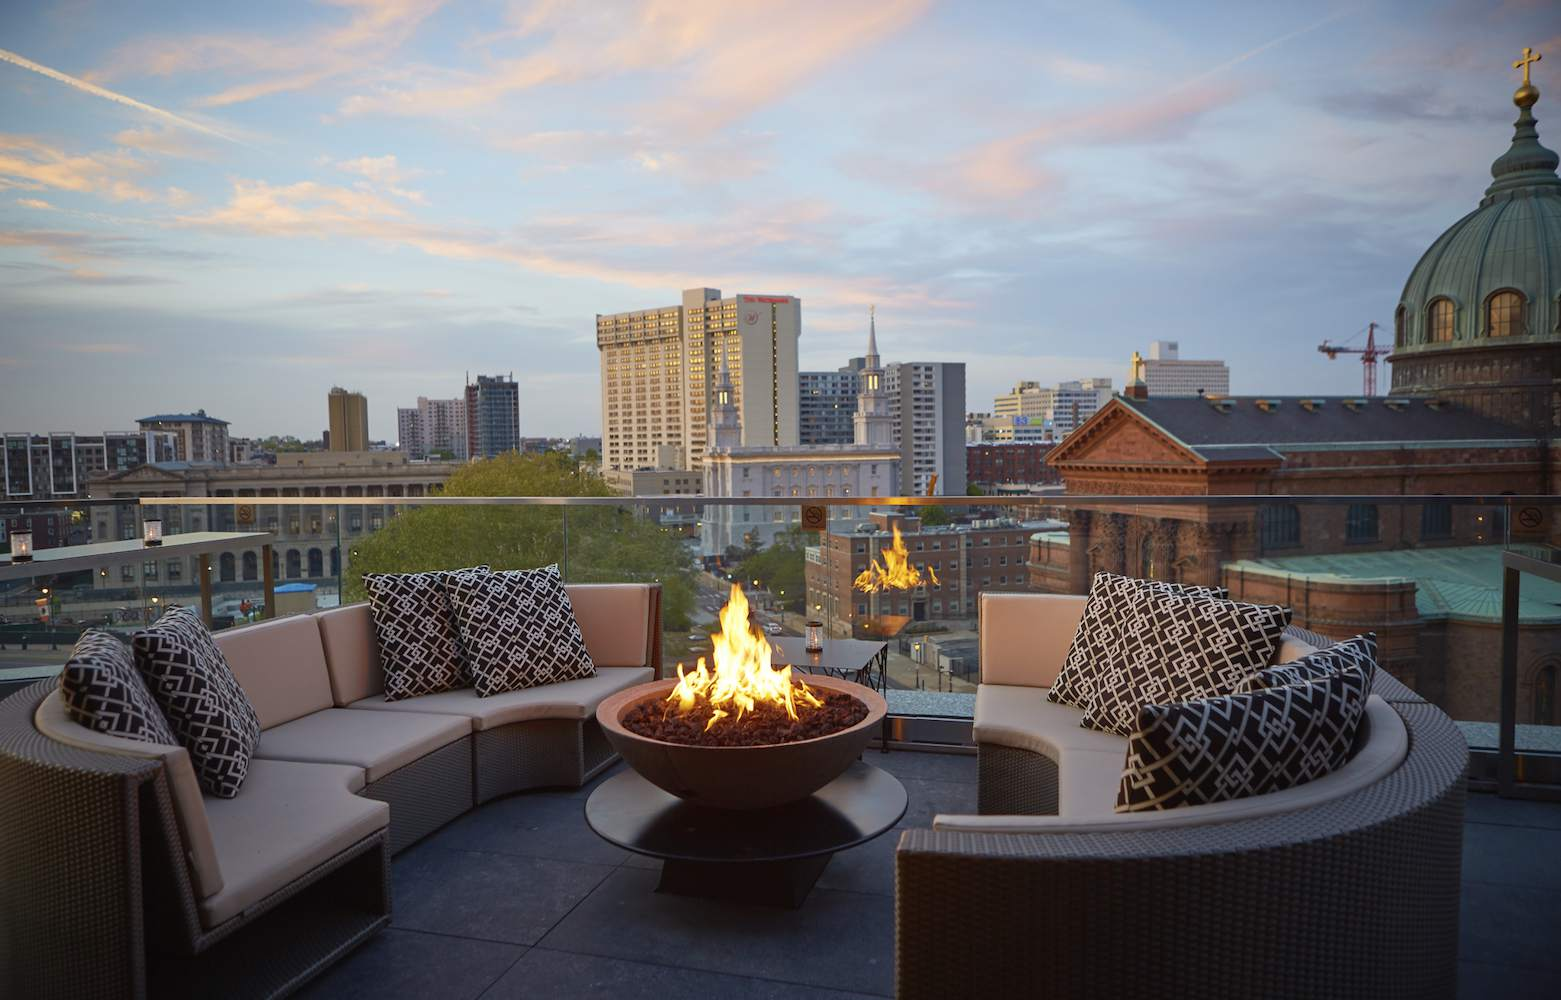 Assembly Rooftop Lounge, Philadelphia